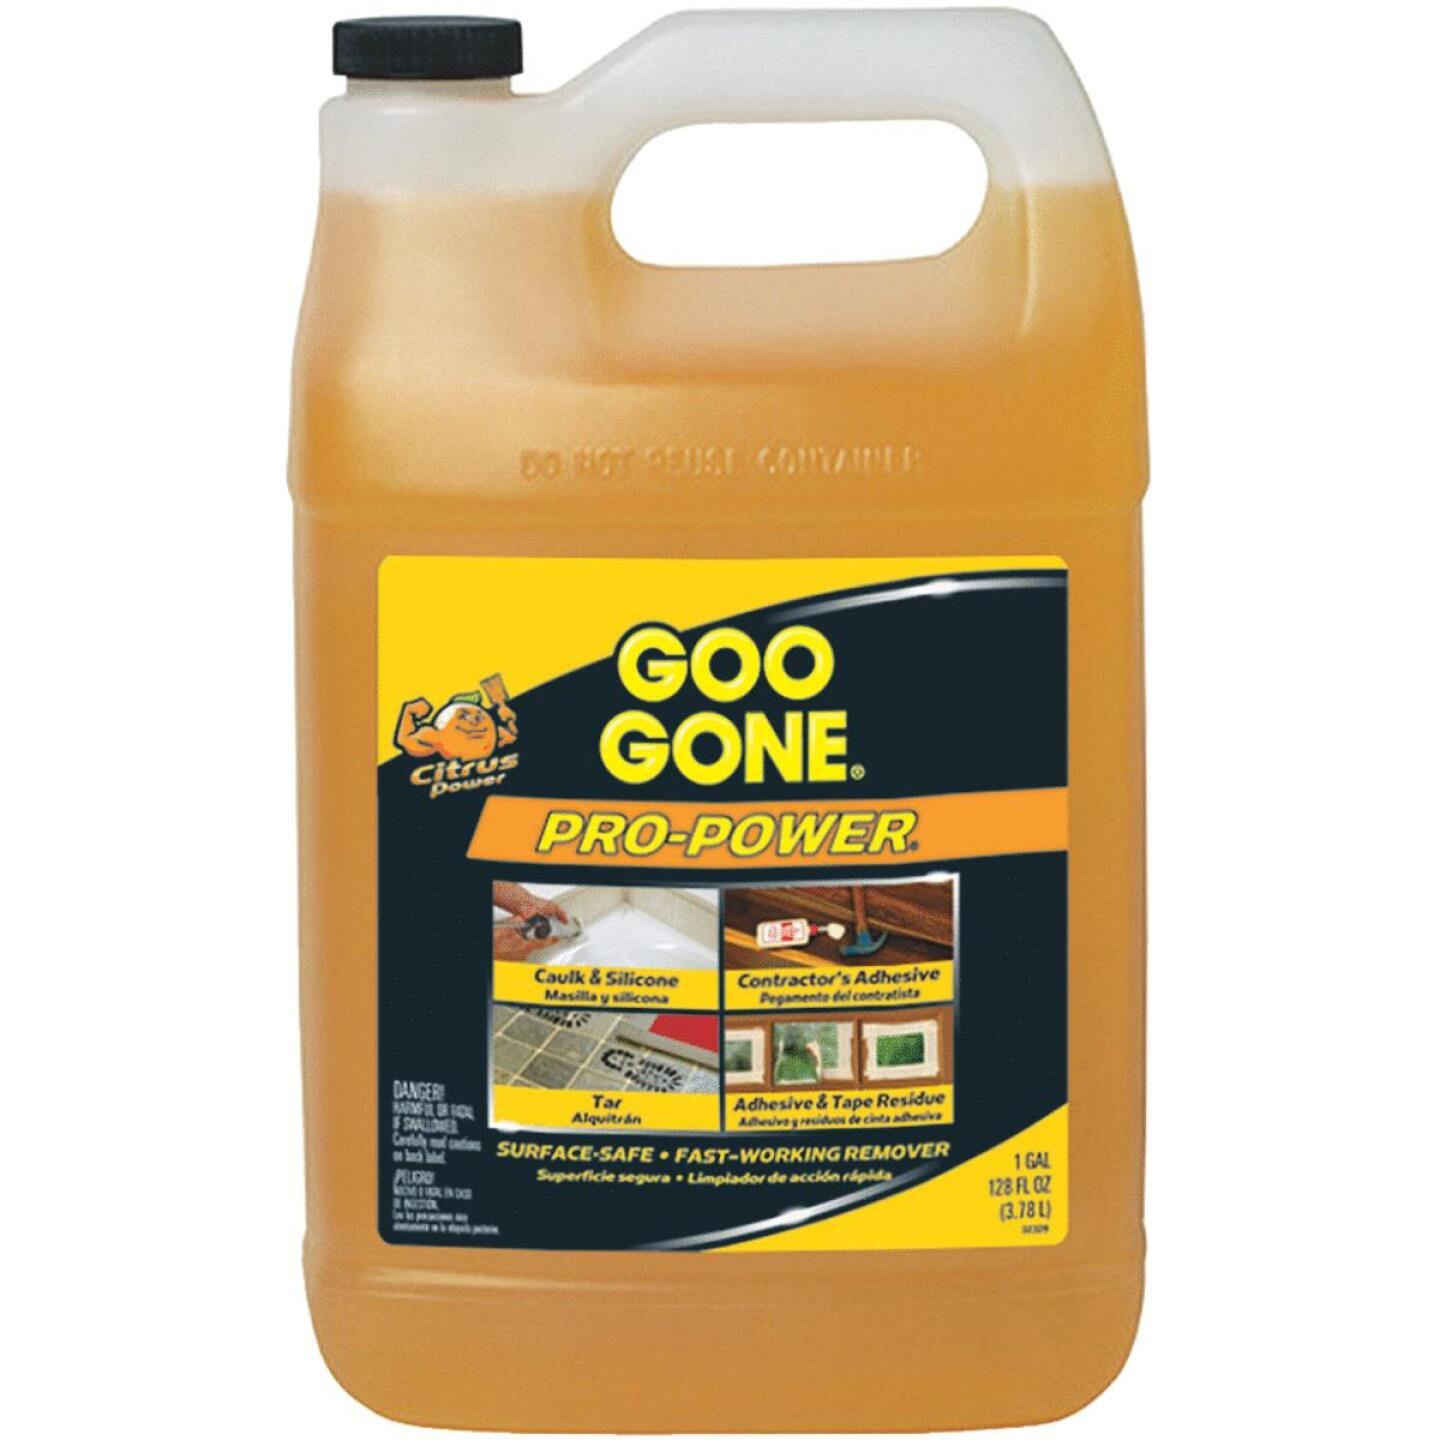 Goo Gone 1 Gal. Pro-Power Adhesive Remover Image 79